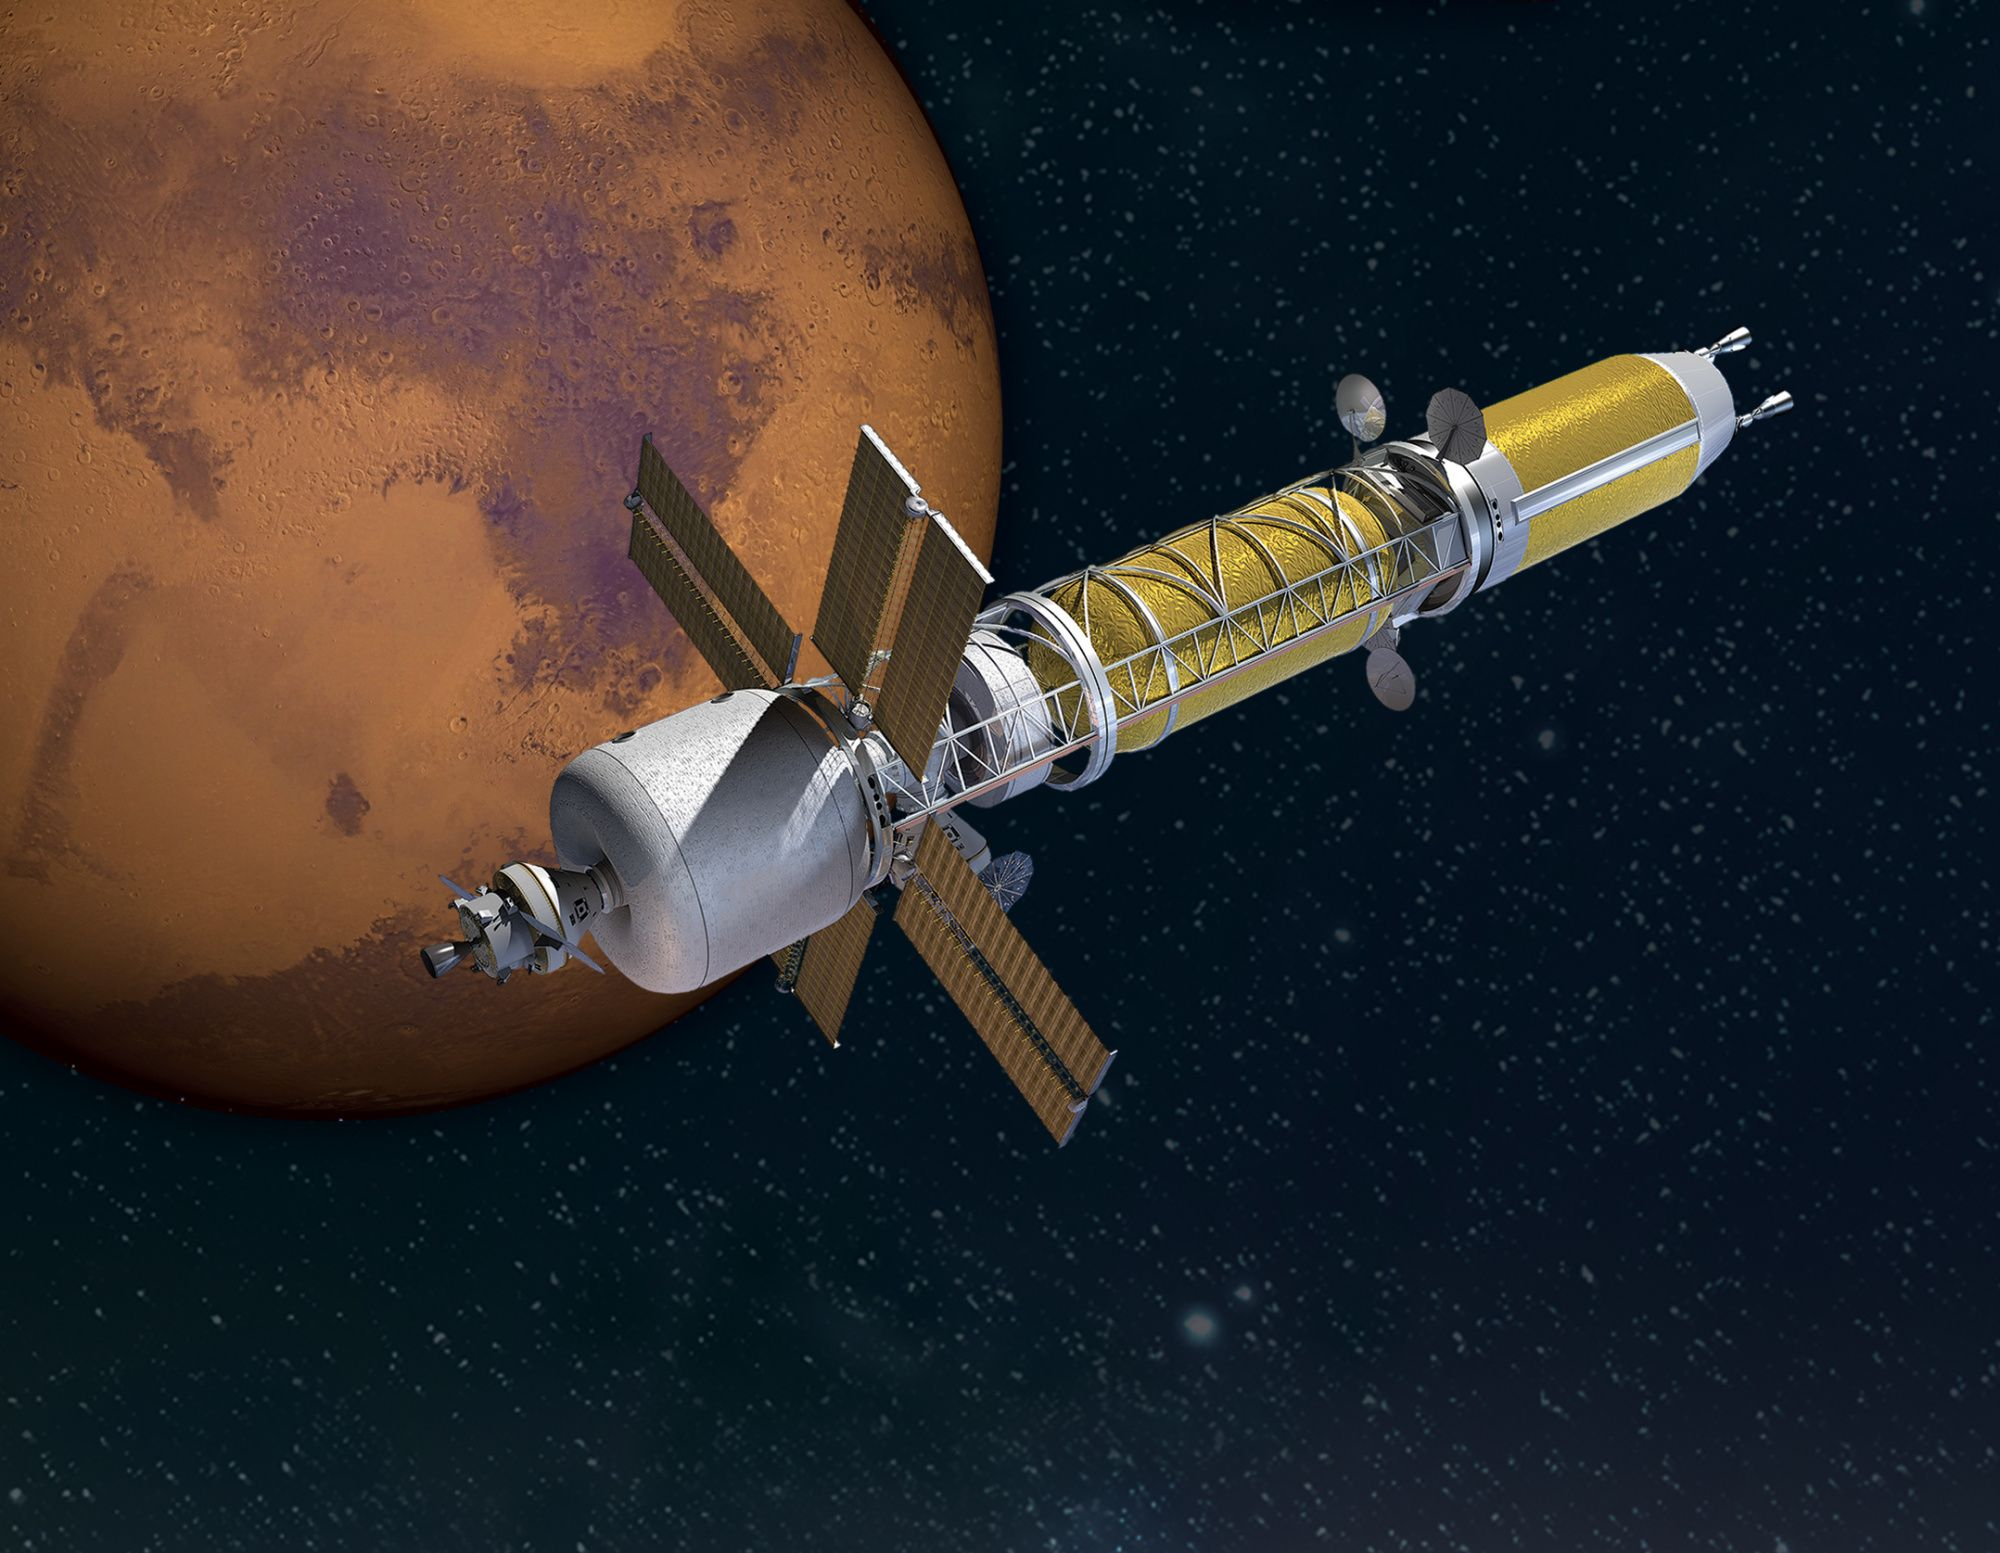 nasa wants nuclear thermal engines to fly humans to marsReal Spaceships Engine Diagram #11